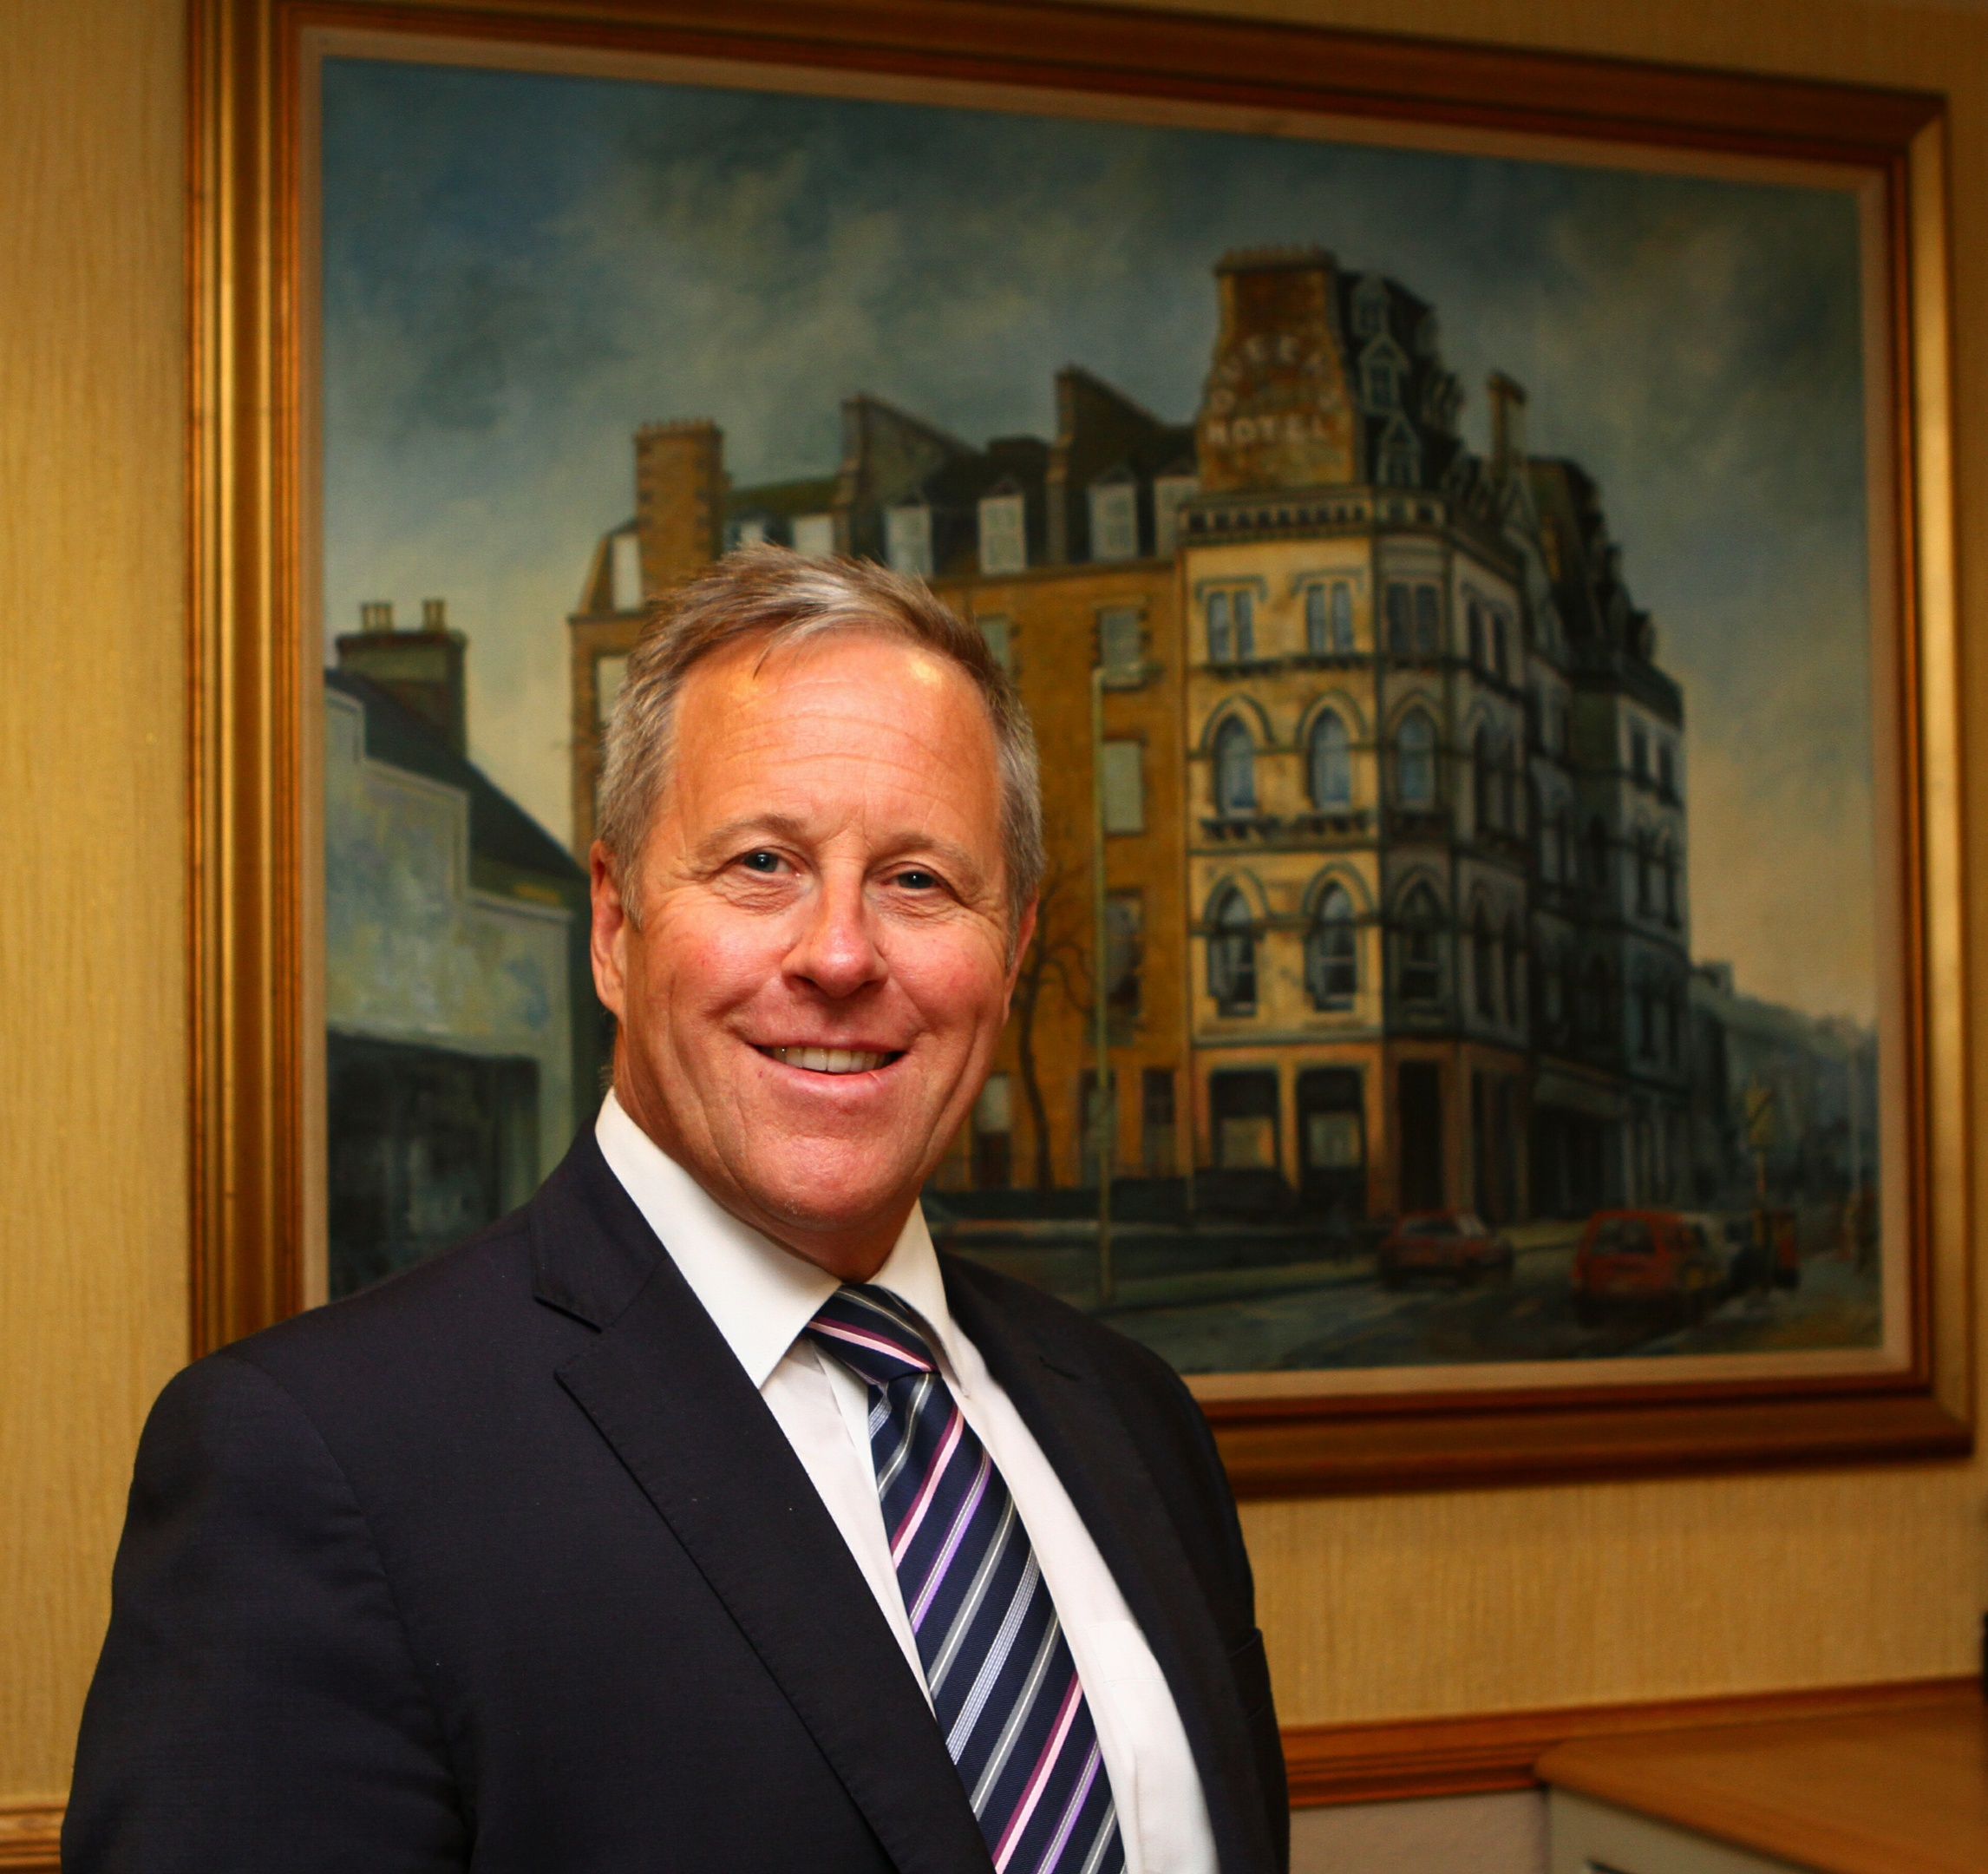 Hotel owner Gordon Sneddon at the Queen's Hotel in Dundee